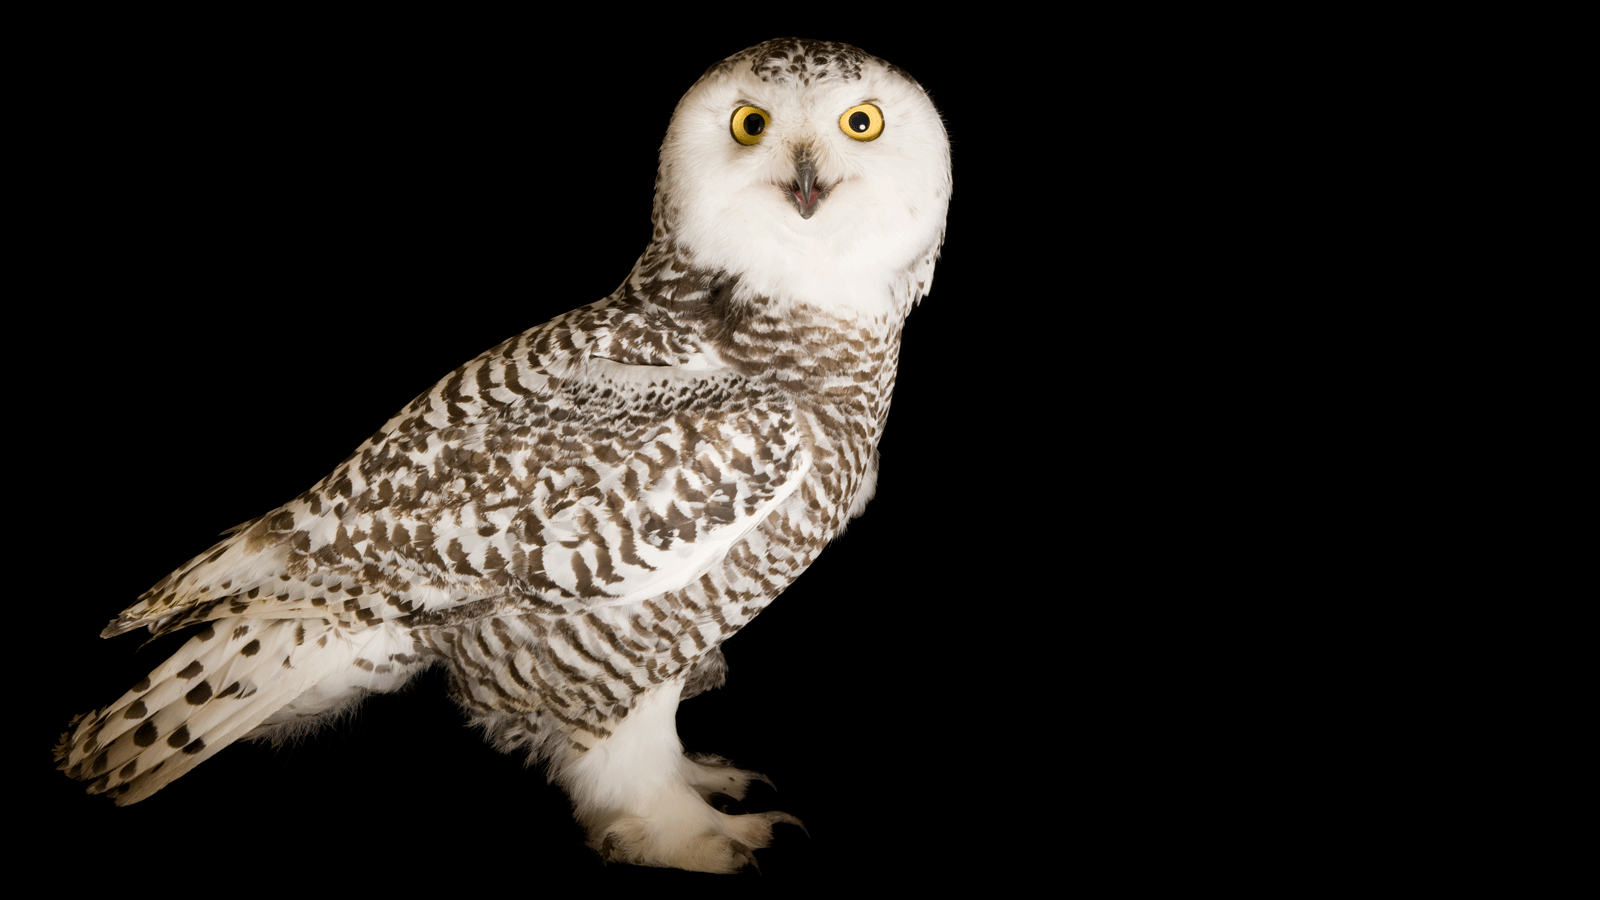 Images of Snowy Owl | 1600x900